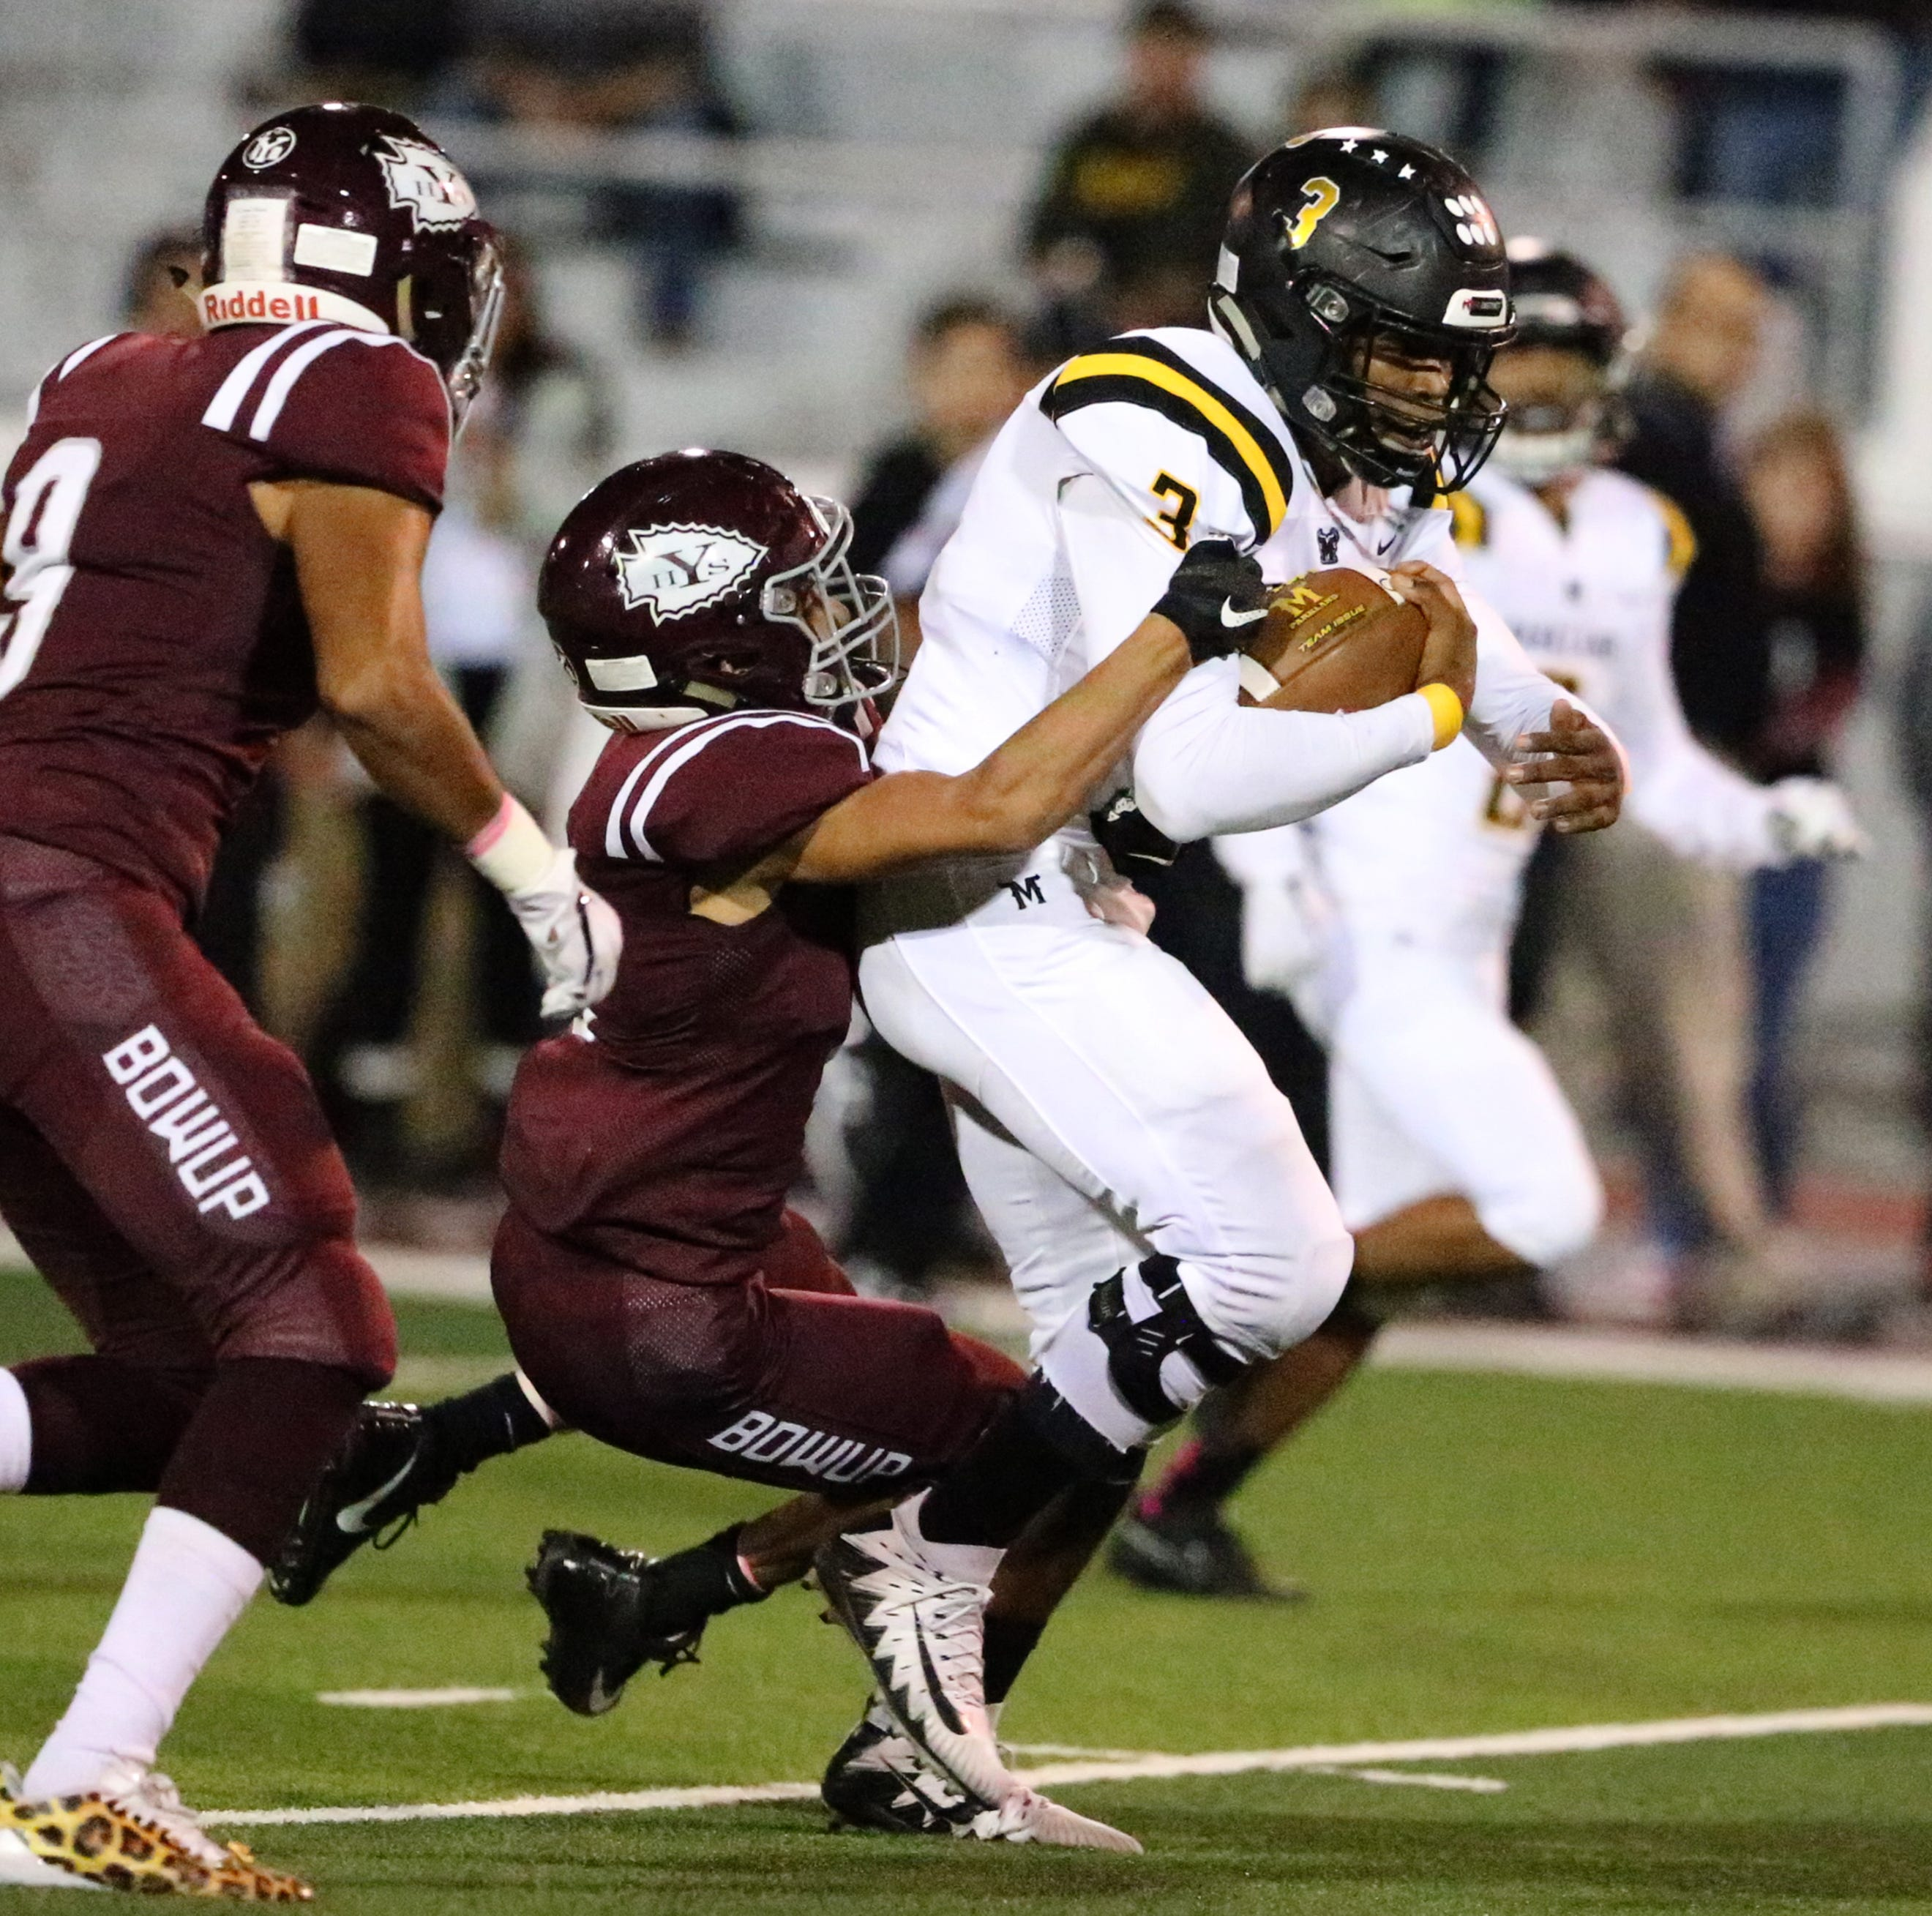 Deion Hankins of Parkland powers his way downfield against Ysleta.